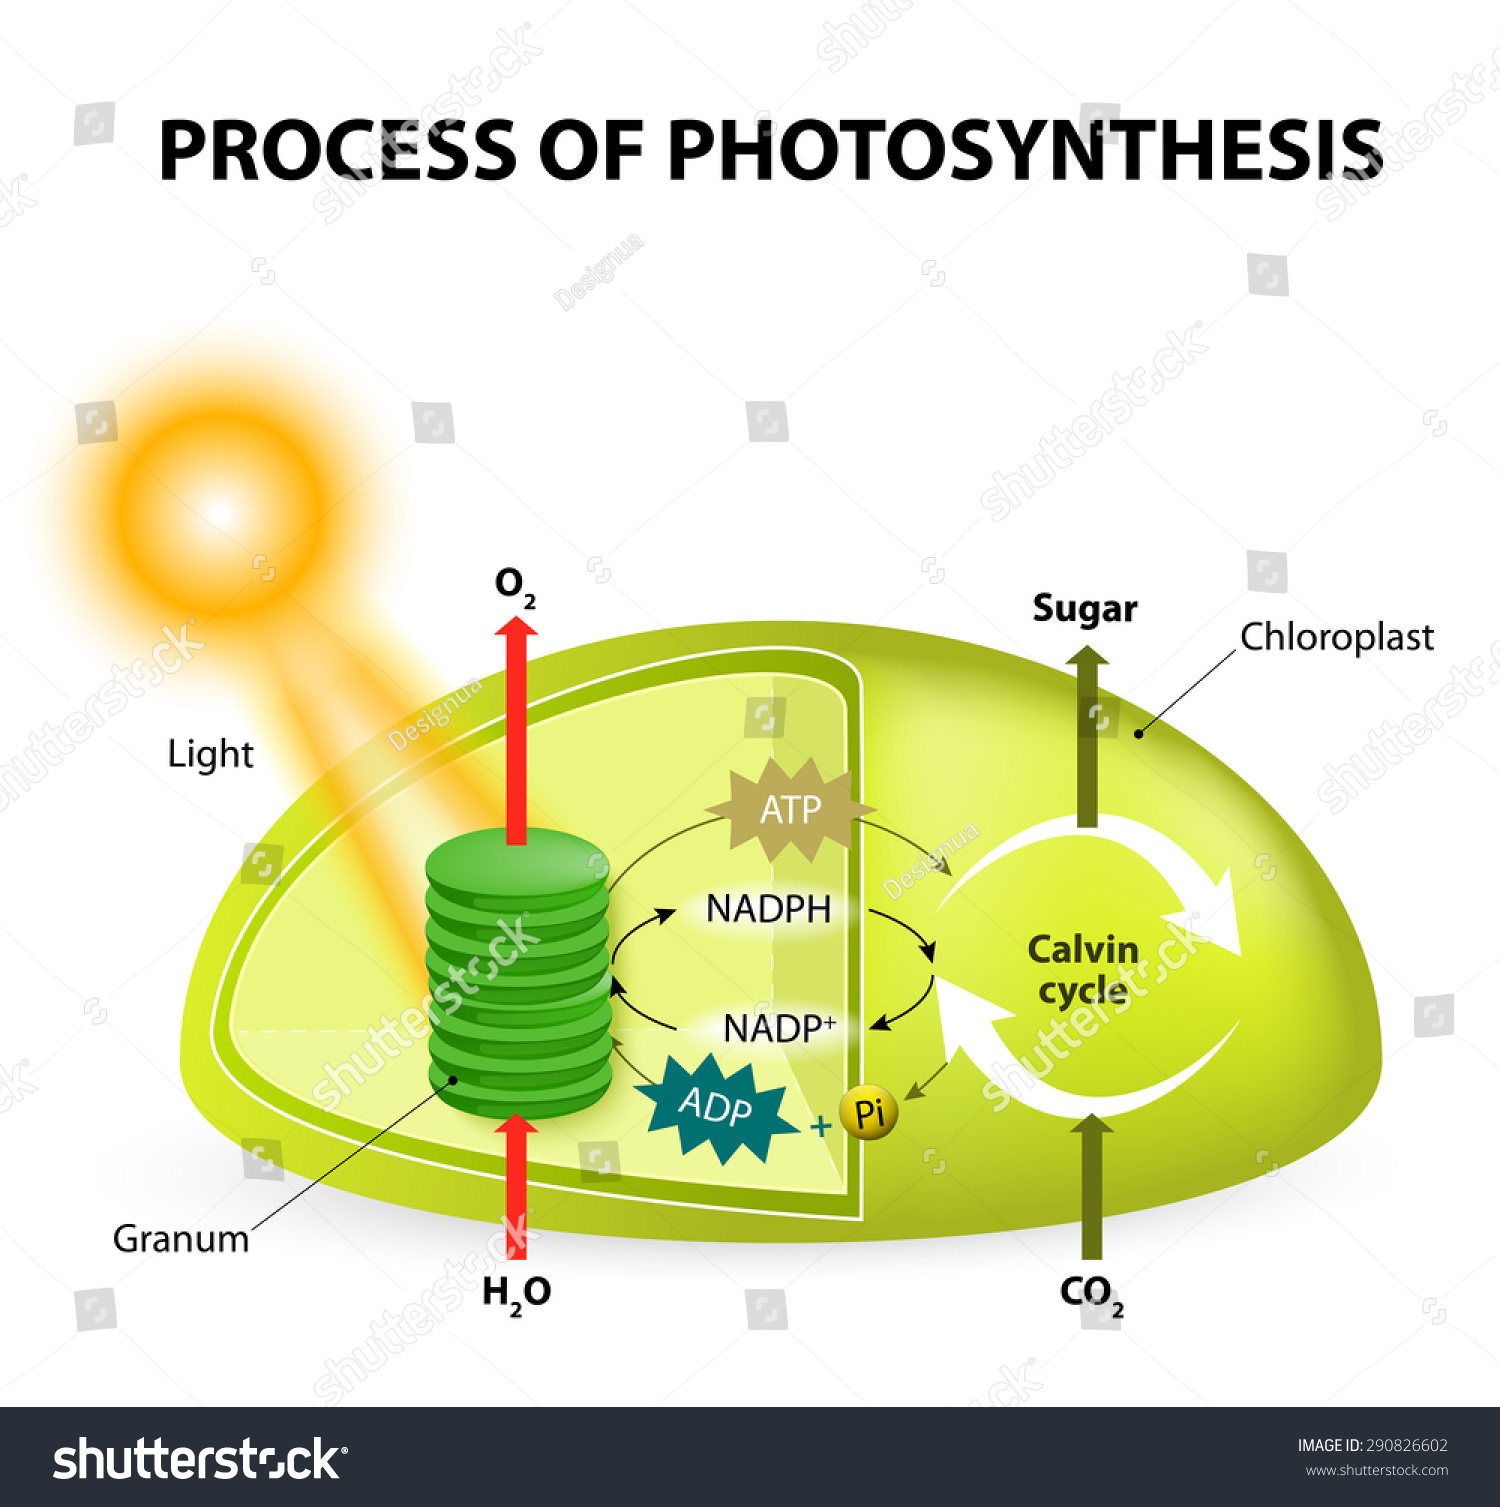 Diagram Process Photosynthesis Showing Light Reactions